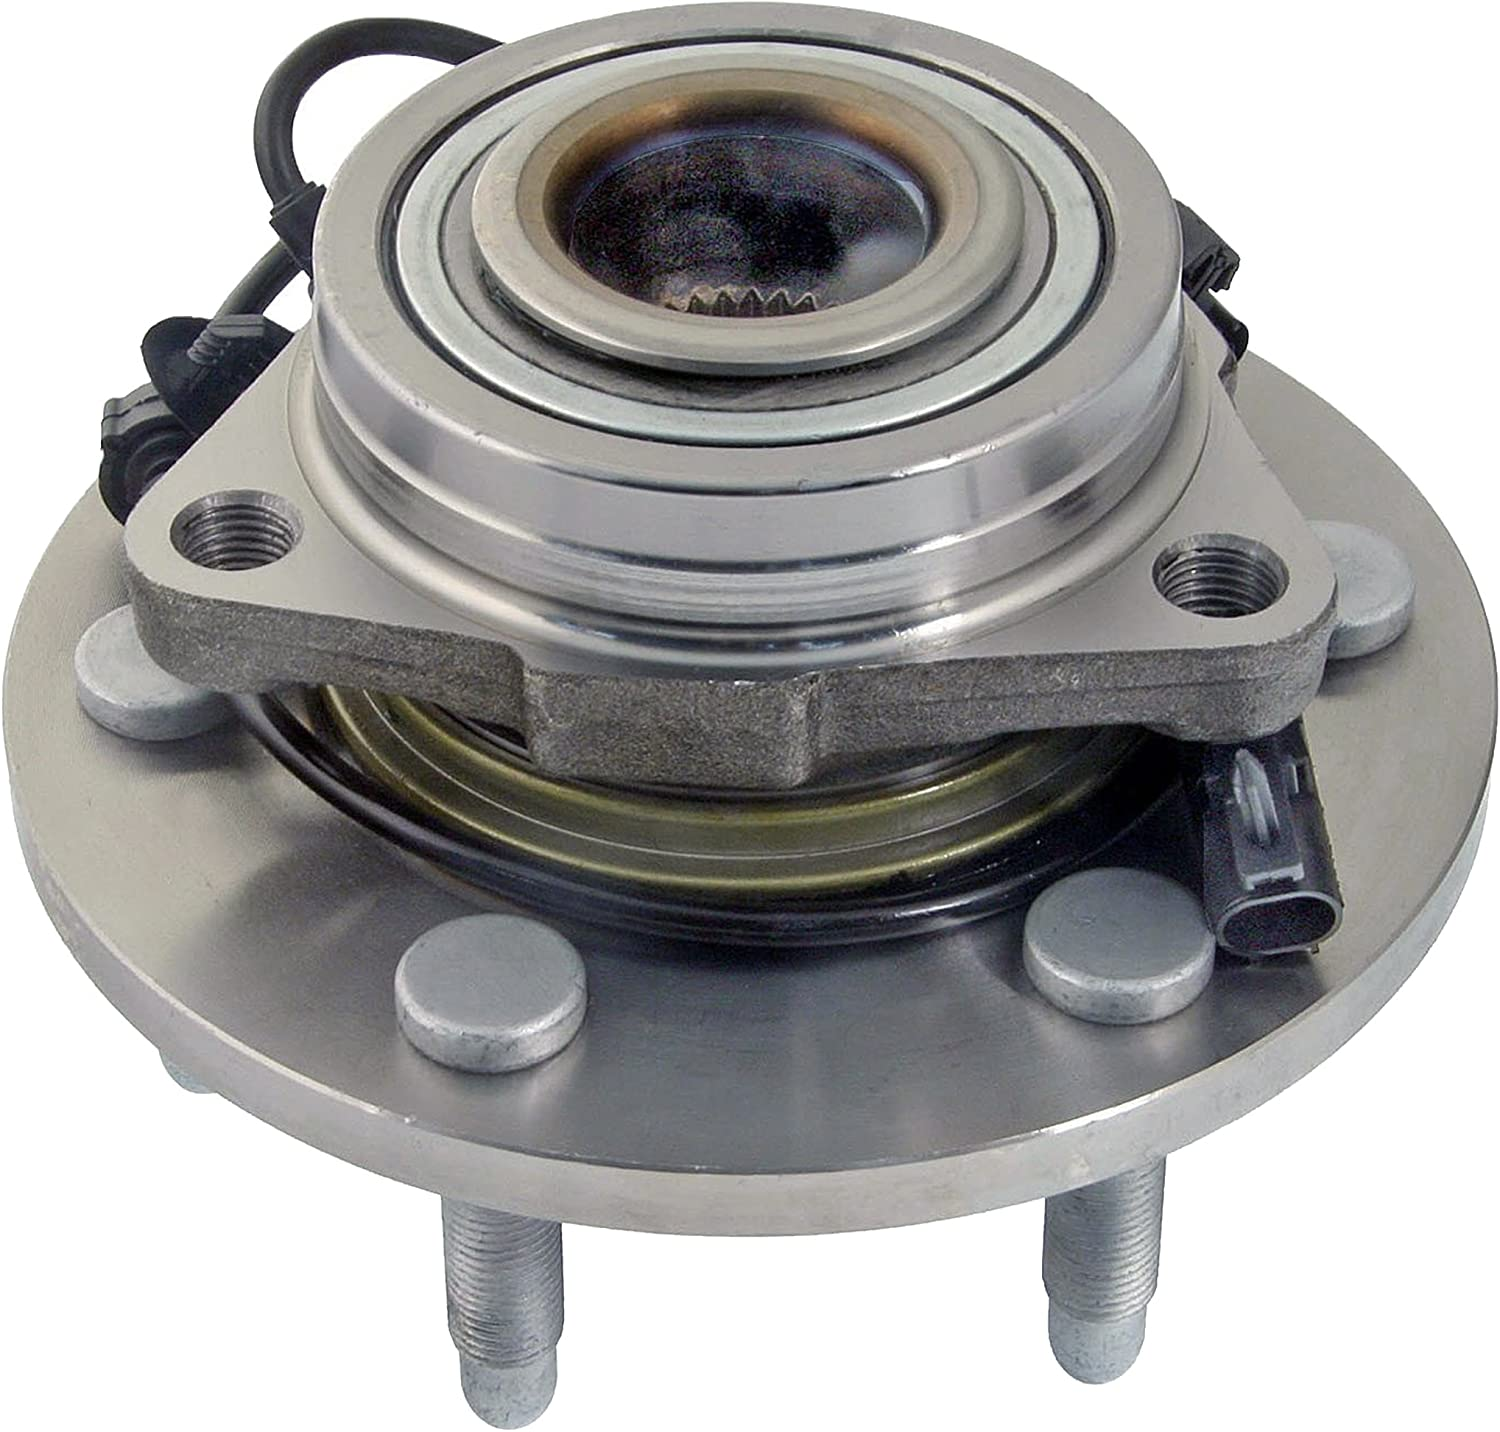 Detroit Axle - 4WD Only Brand New Front (Left or Right) Wheel Hub and Bearing Assembly for Chevrolet & GMC Truck's & SUV's 4x4 6-Lug ABS